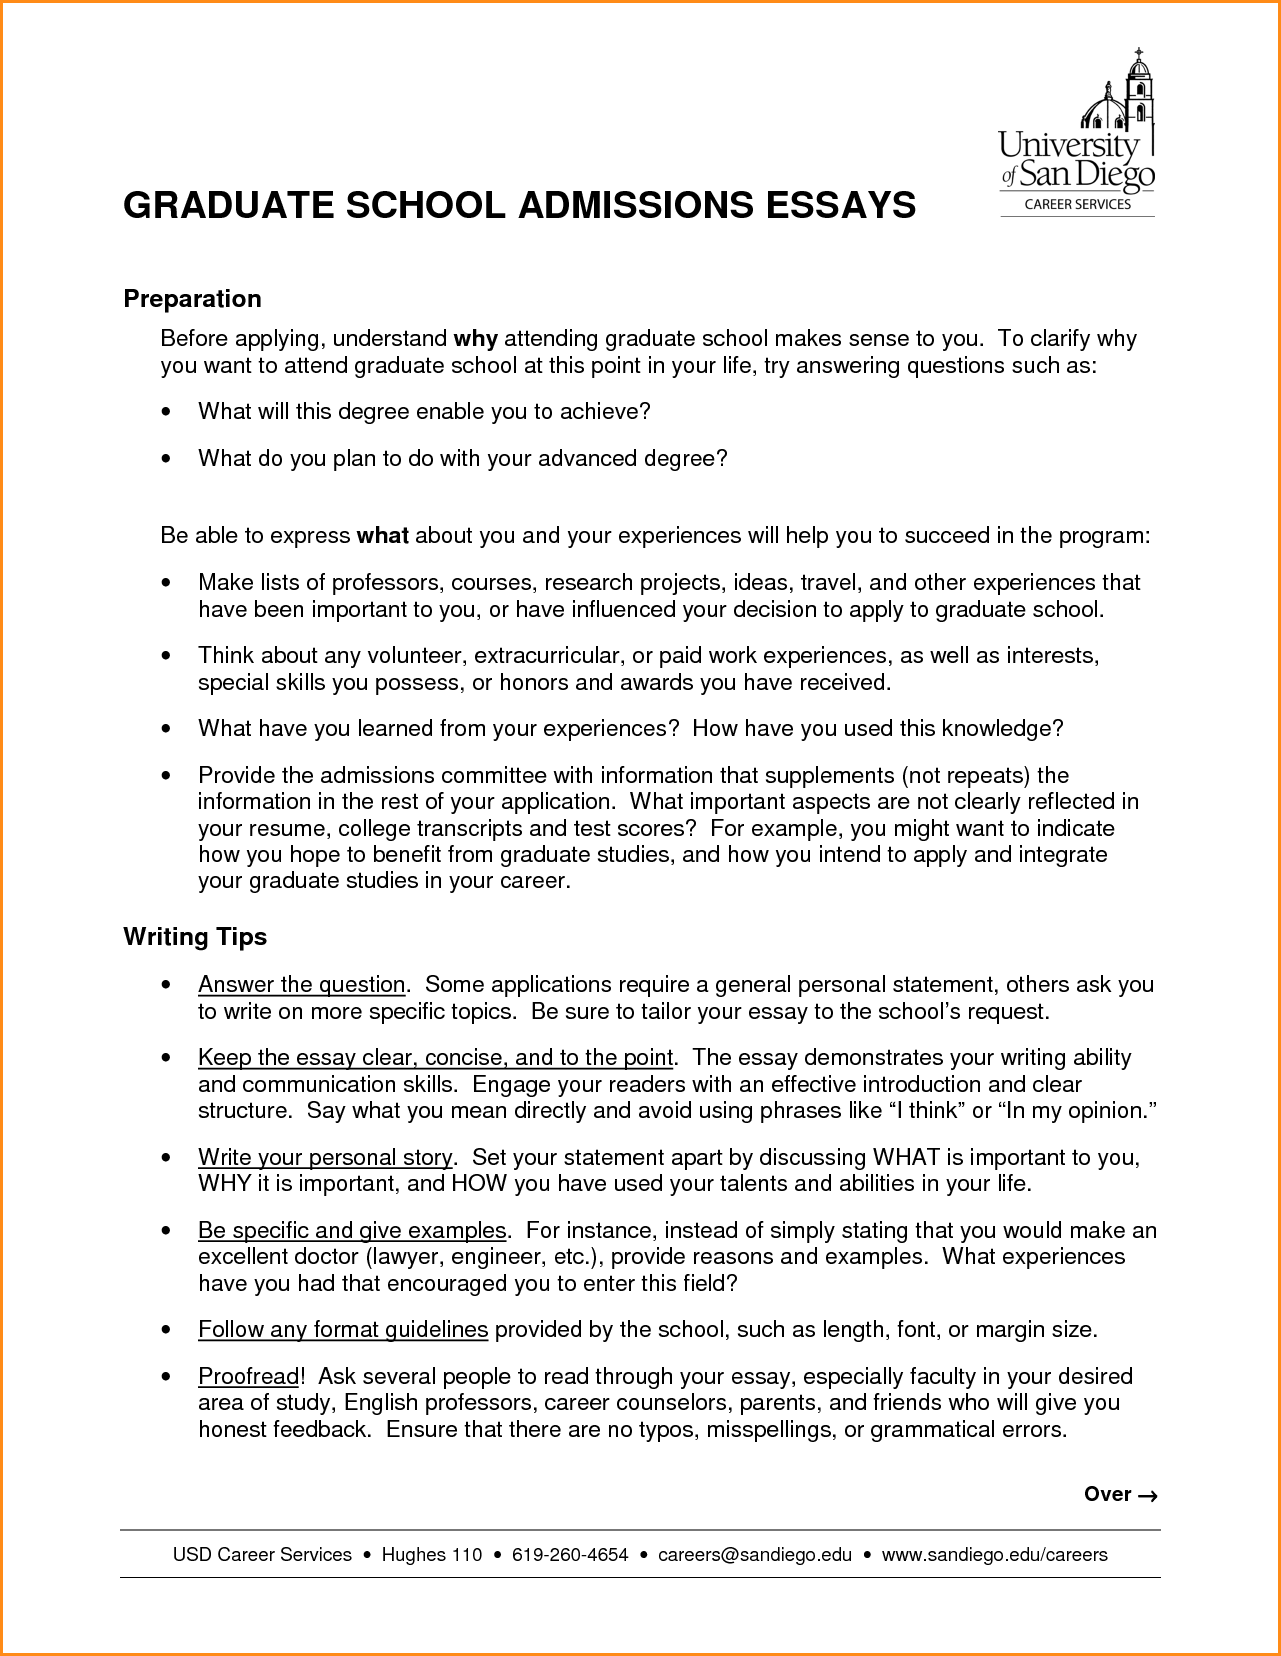 005 High School Graduation Essay Science Competitions For Students Pics Sample College Essays Applic International Competition Contests Example Excellent Topics Research Paper Writing Prompts Full